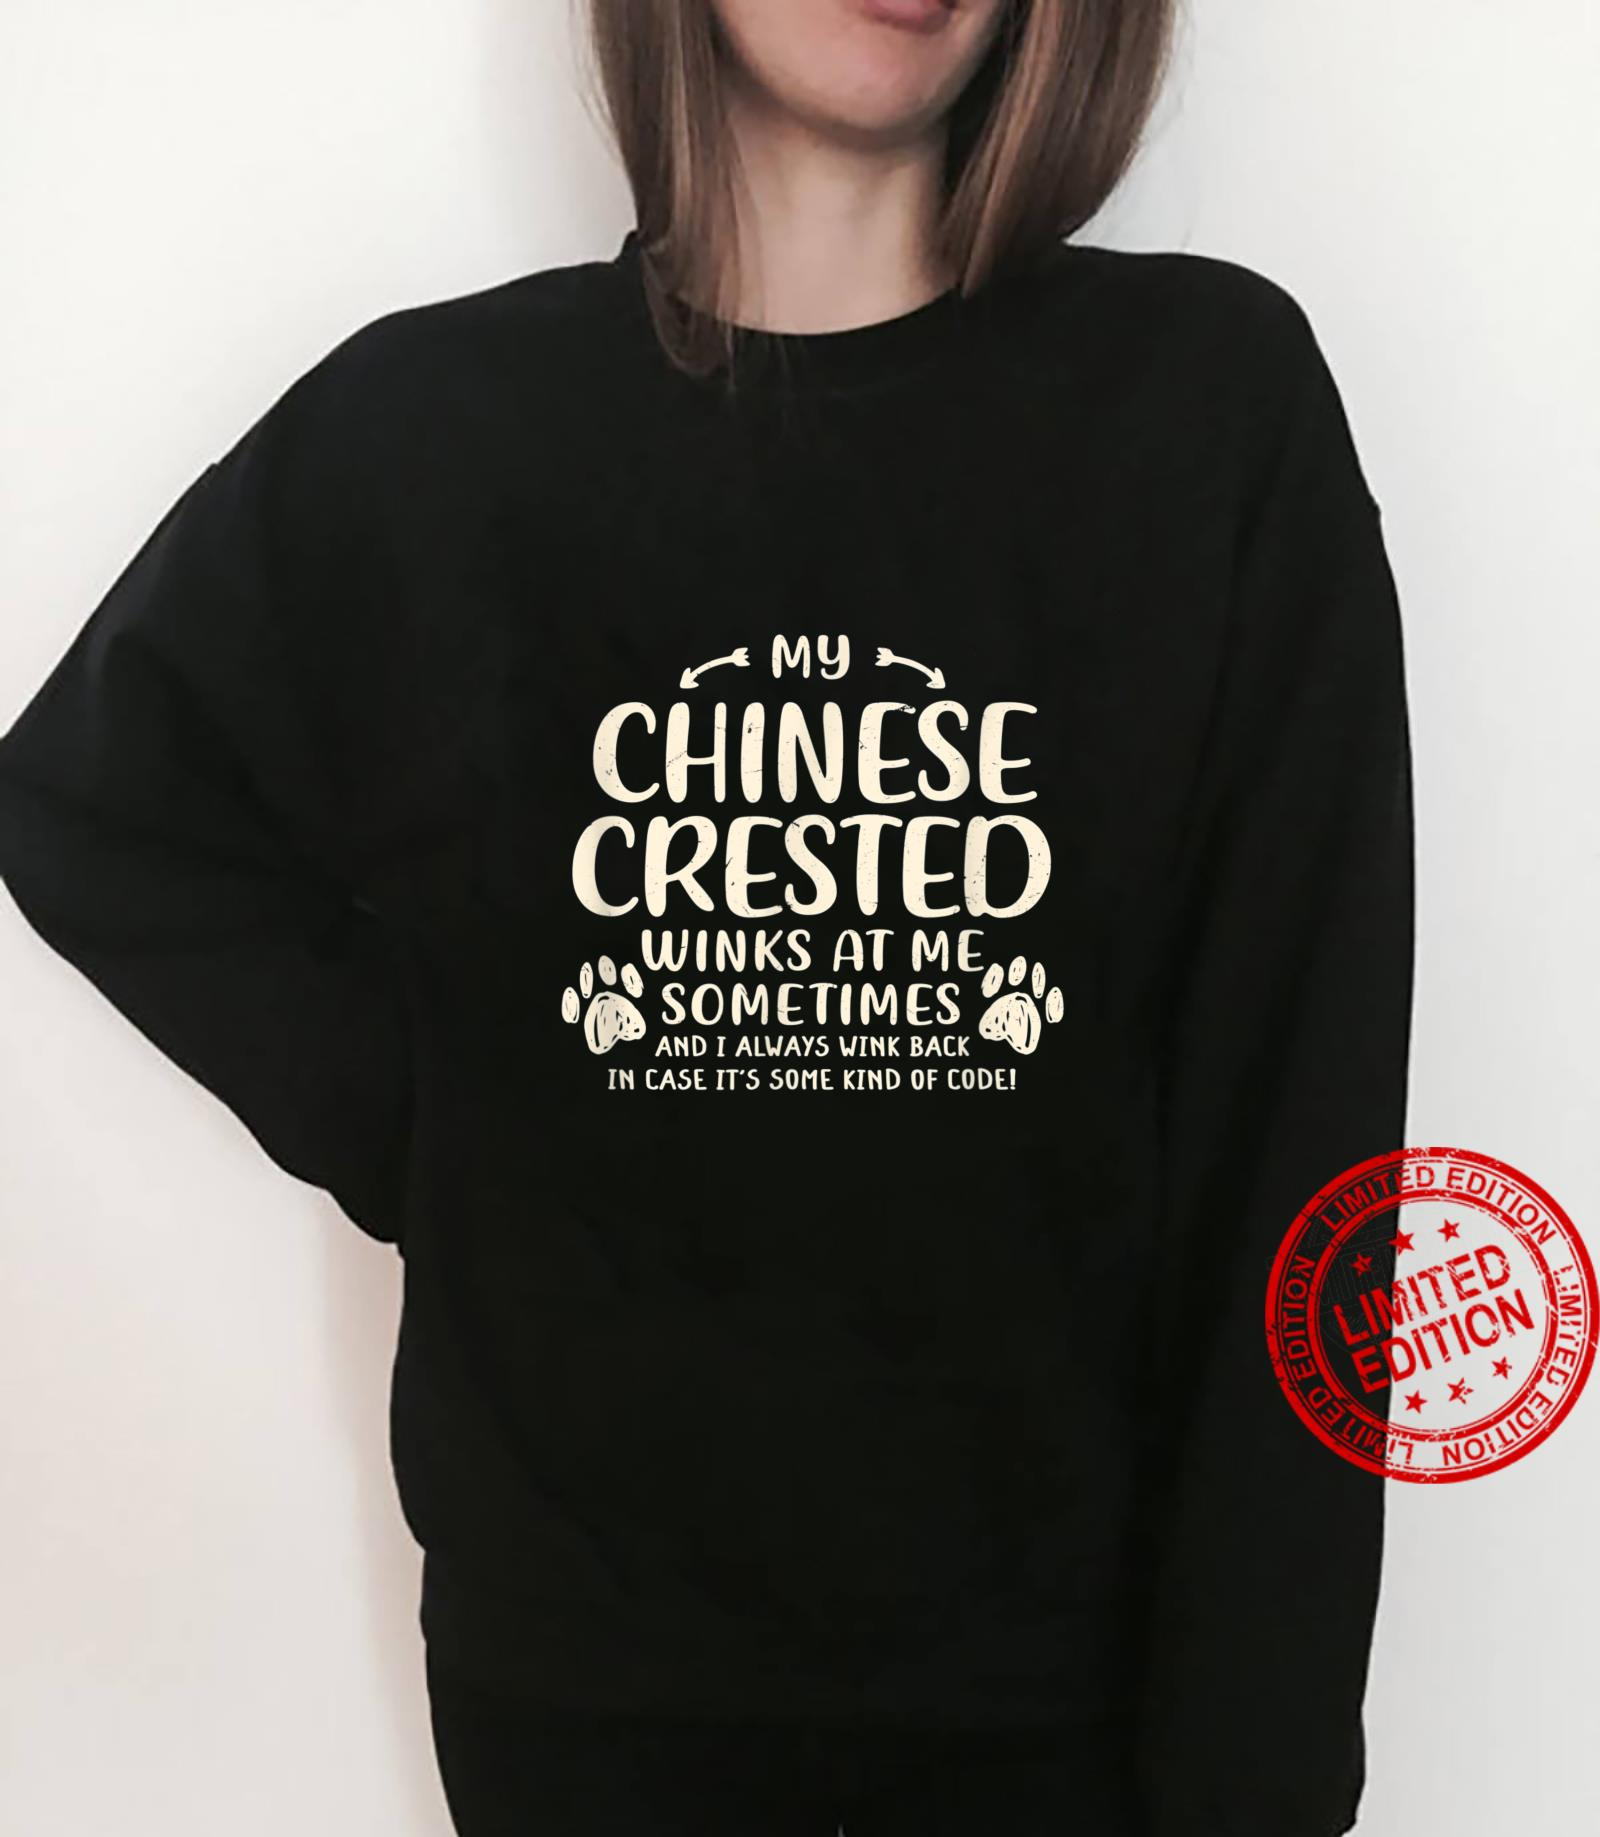 My Chinese Crested Winks at Me Sometimes Puff Dog Shirt sweater